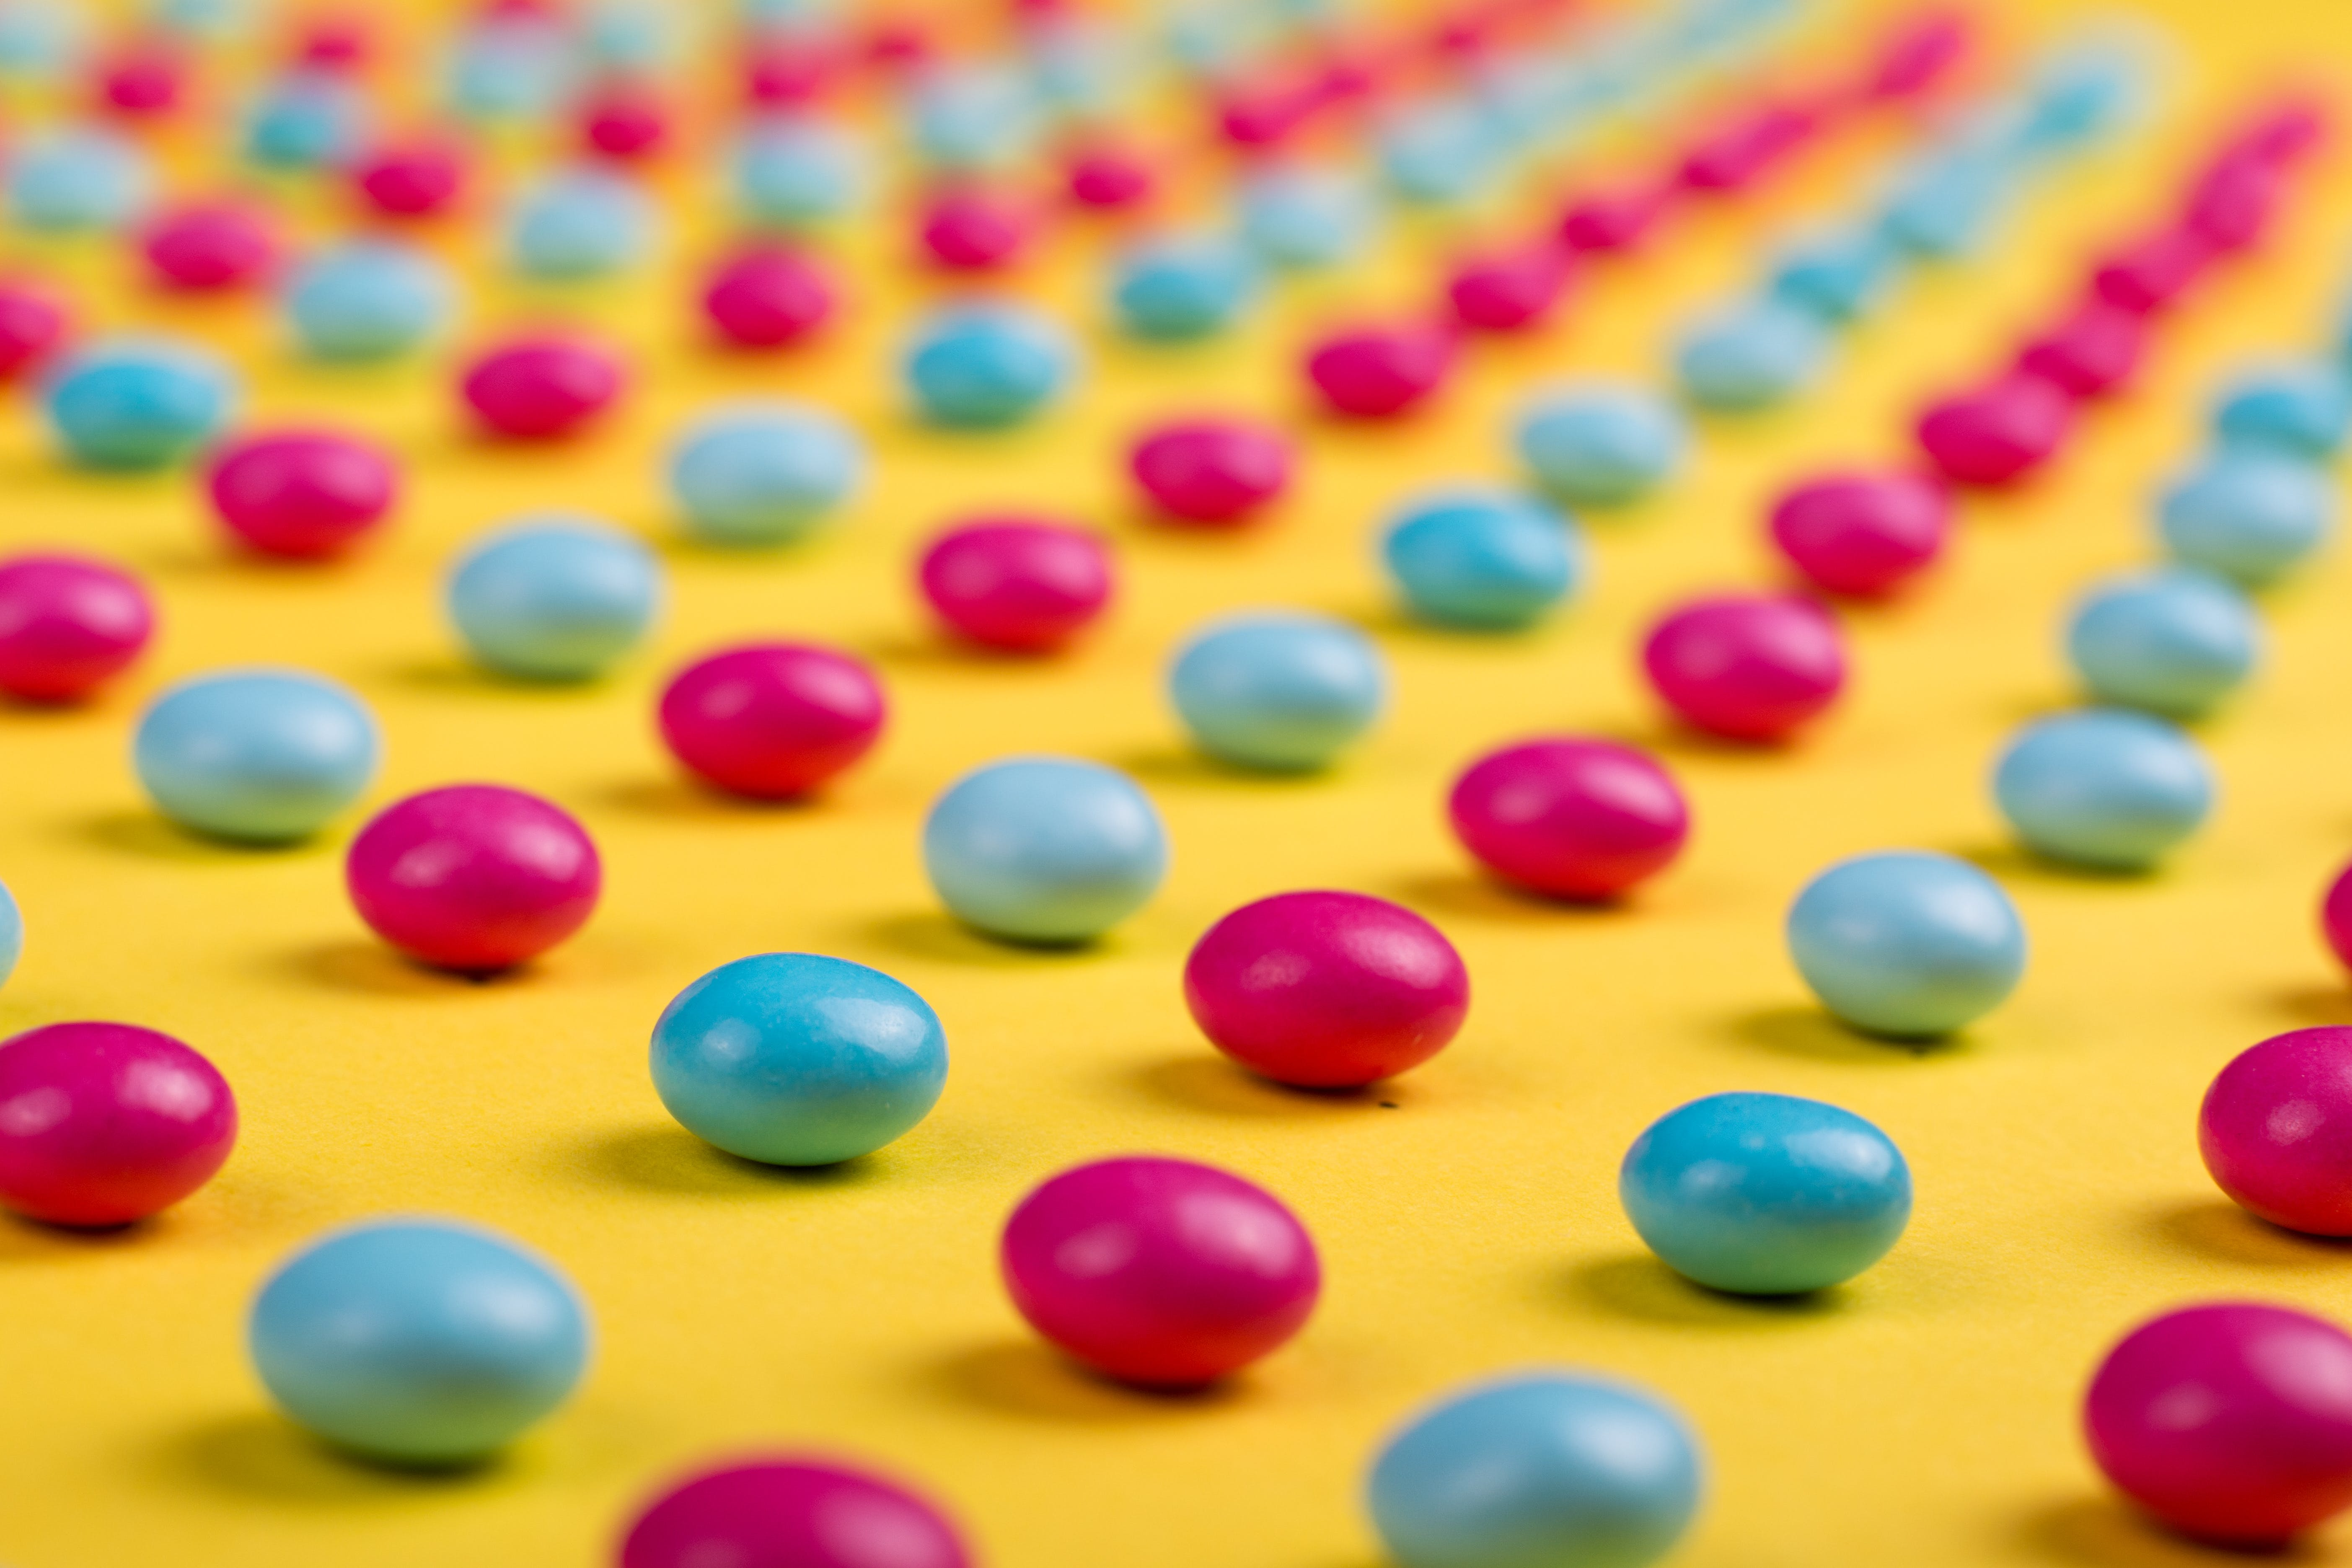 Selective Focus Photo of Round Pink-and-blue Beads